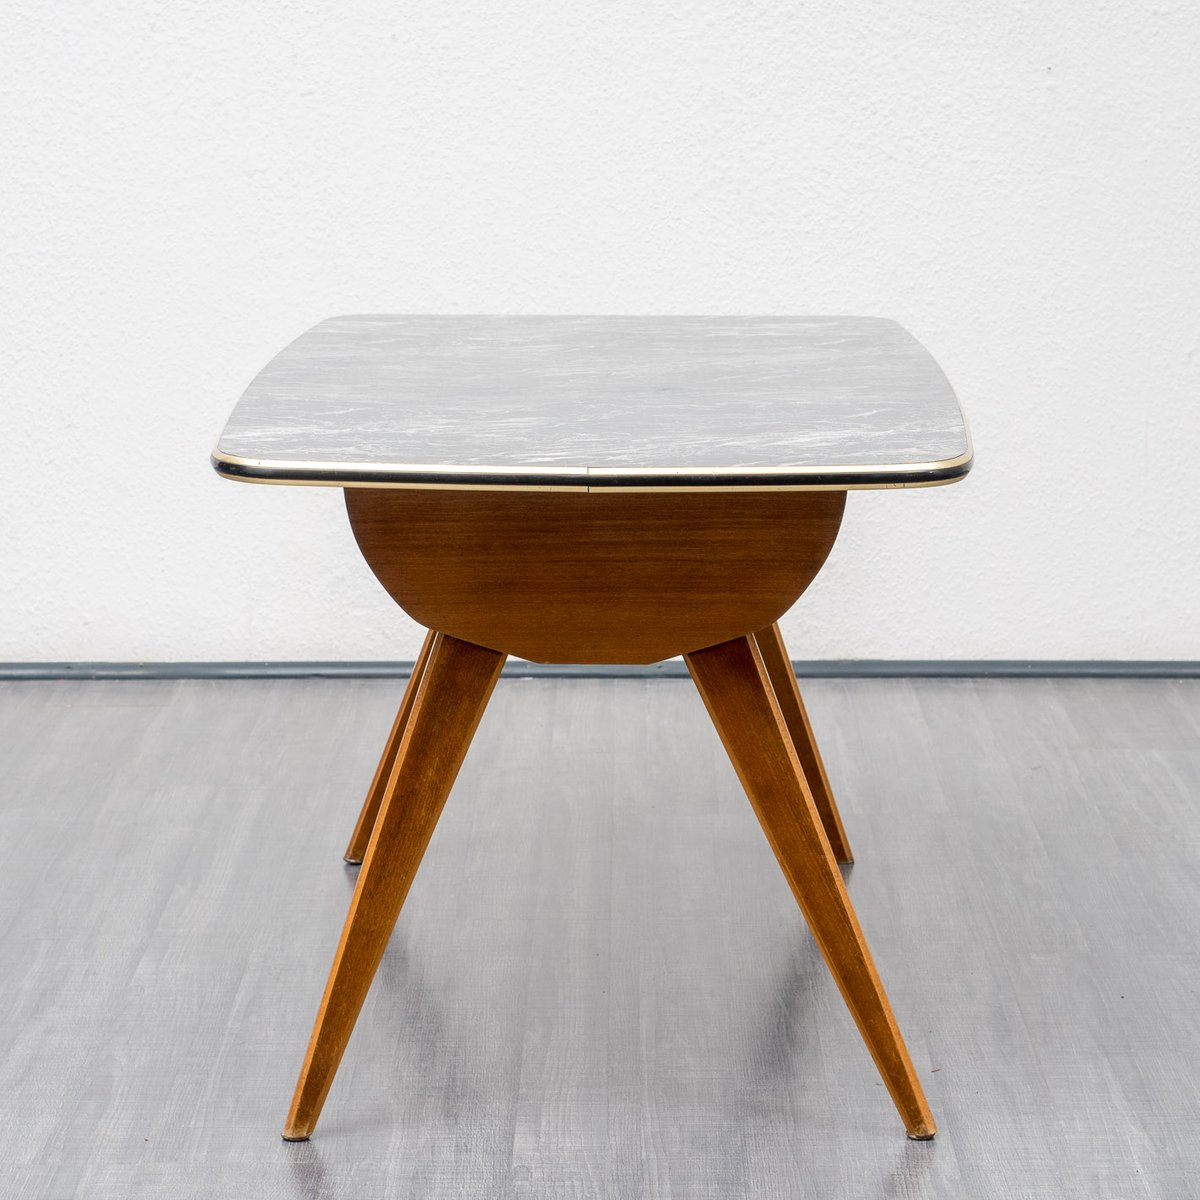 Coffee Table Legs Australia: Vintage Coffee Table With Scissor Legs, 1950s For Sale At